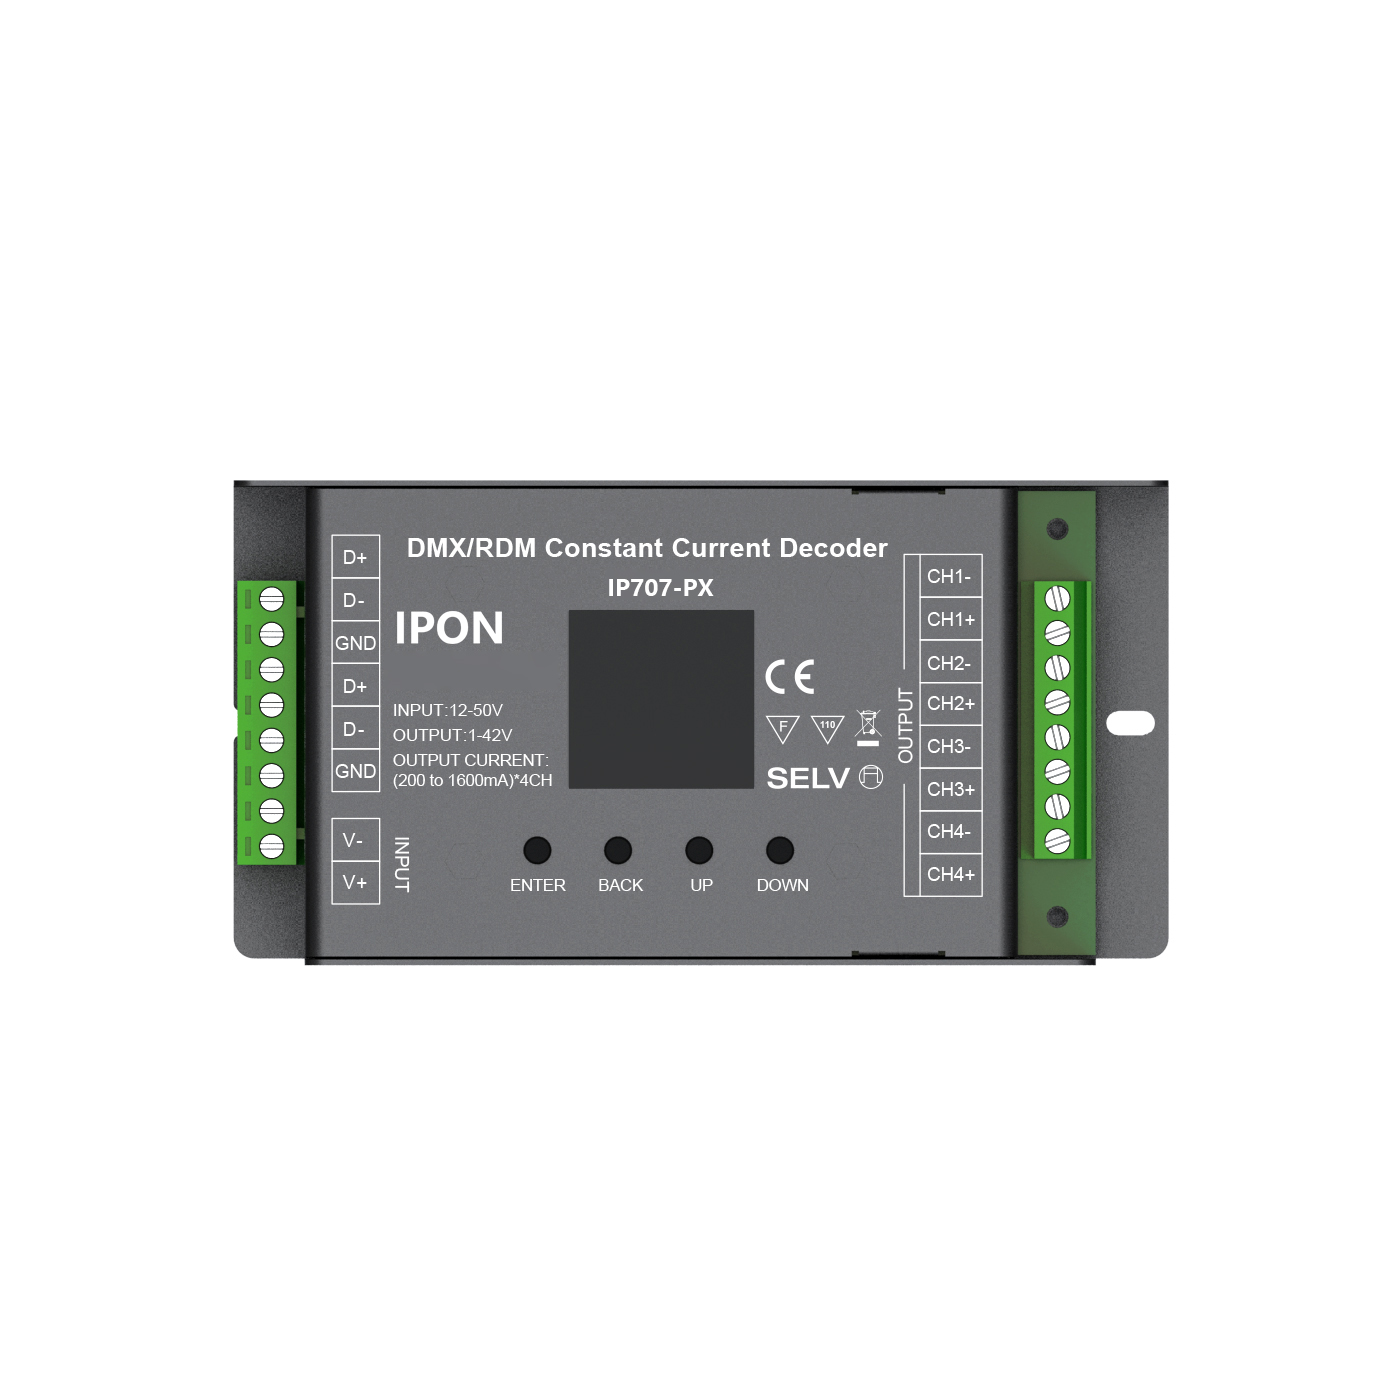 IPON LED Array image231